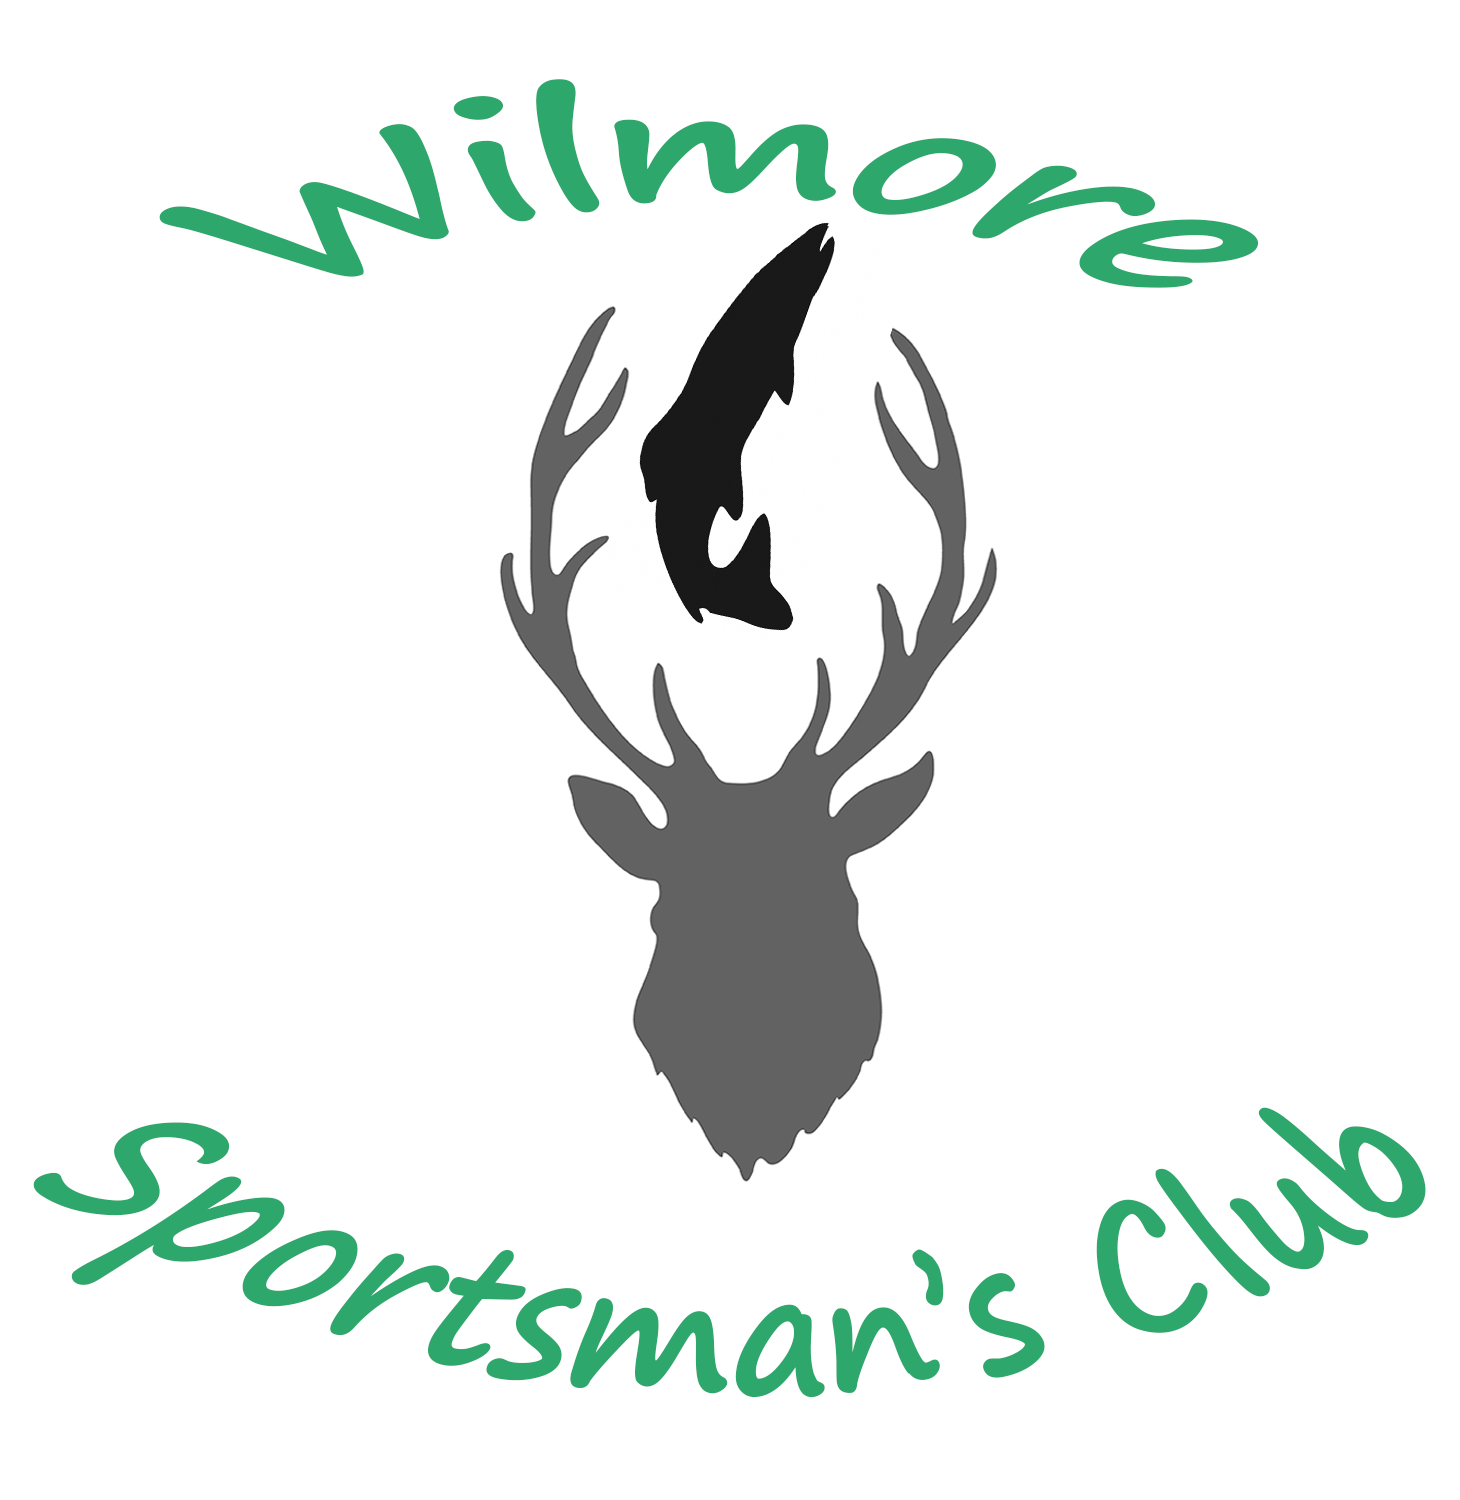 Wilmore Sportsman's Club